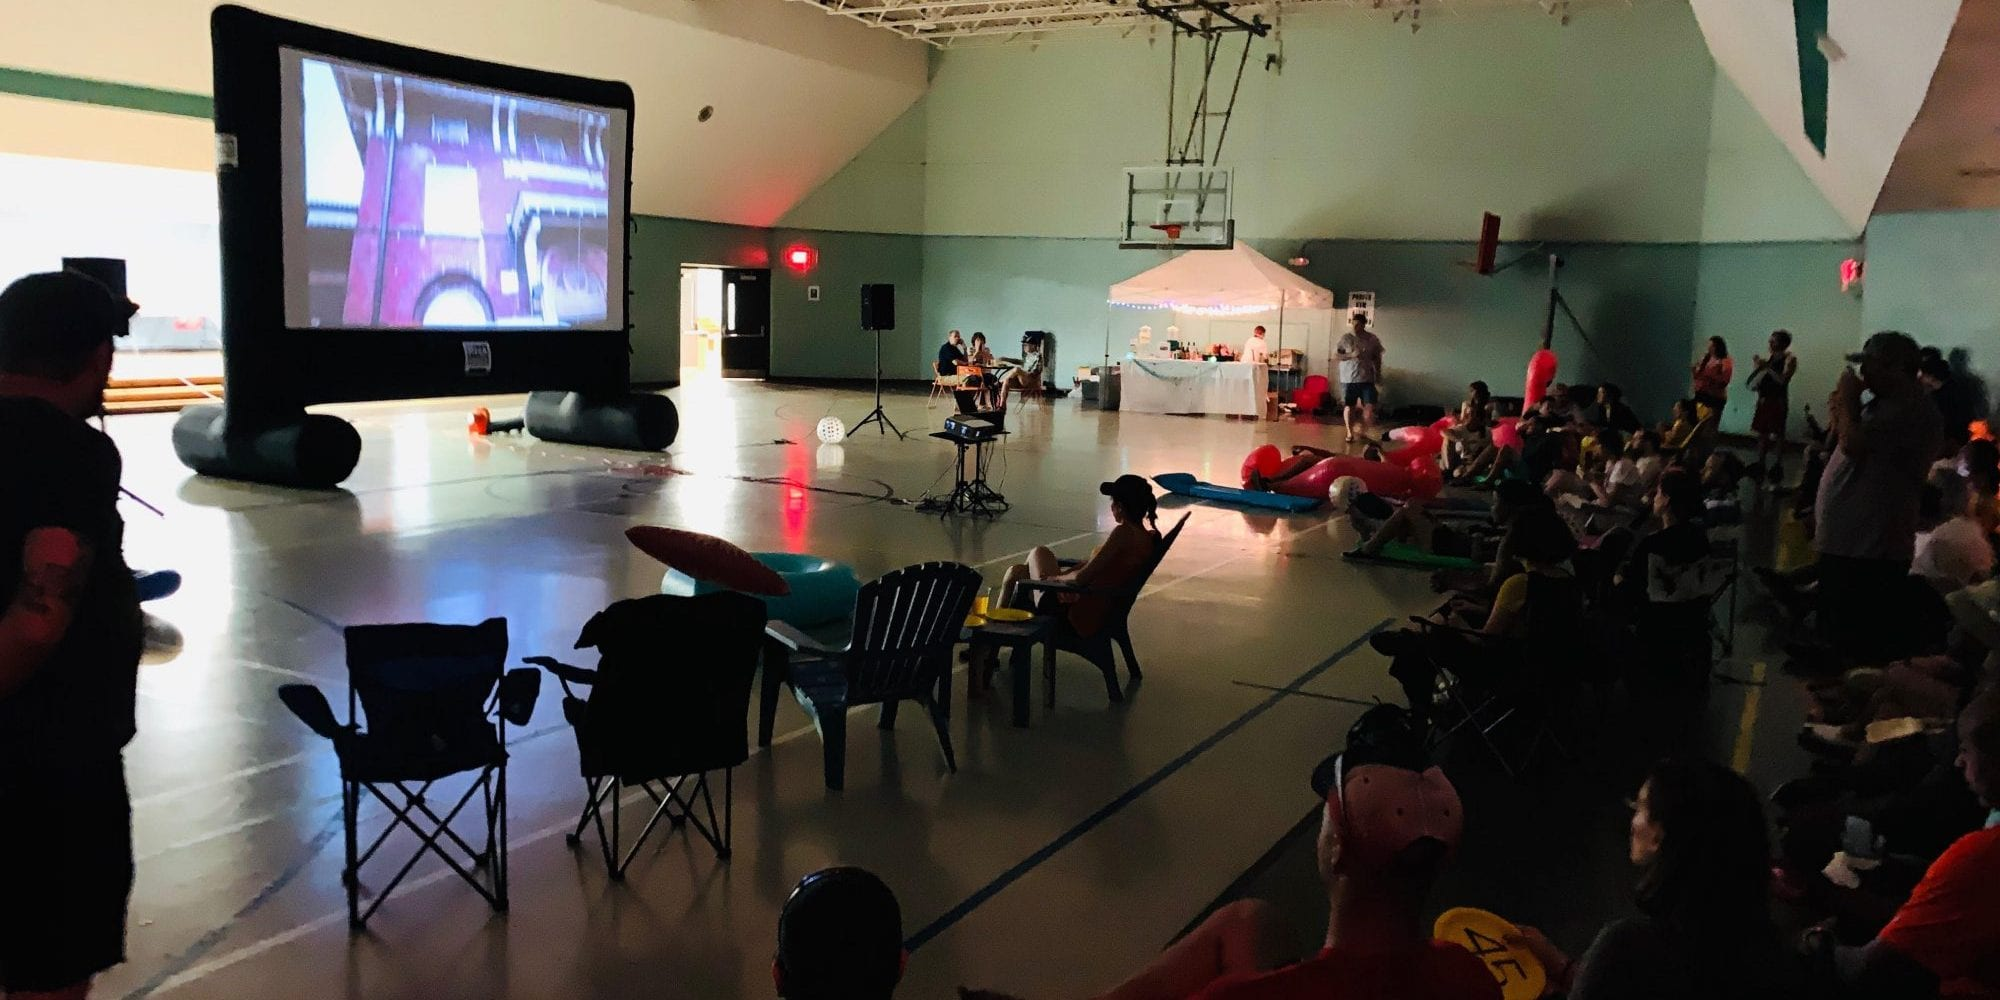 Neighbors gather in the Marquette Rec Center for a movie night fundraiser.